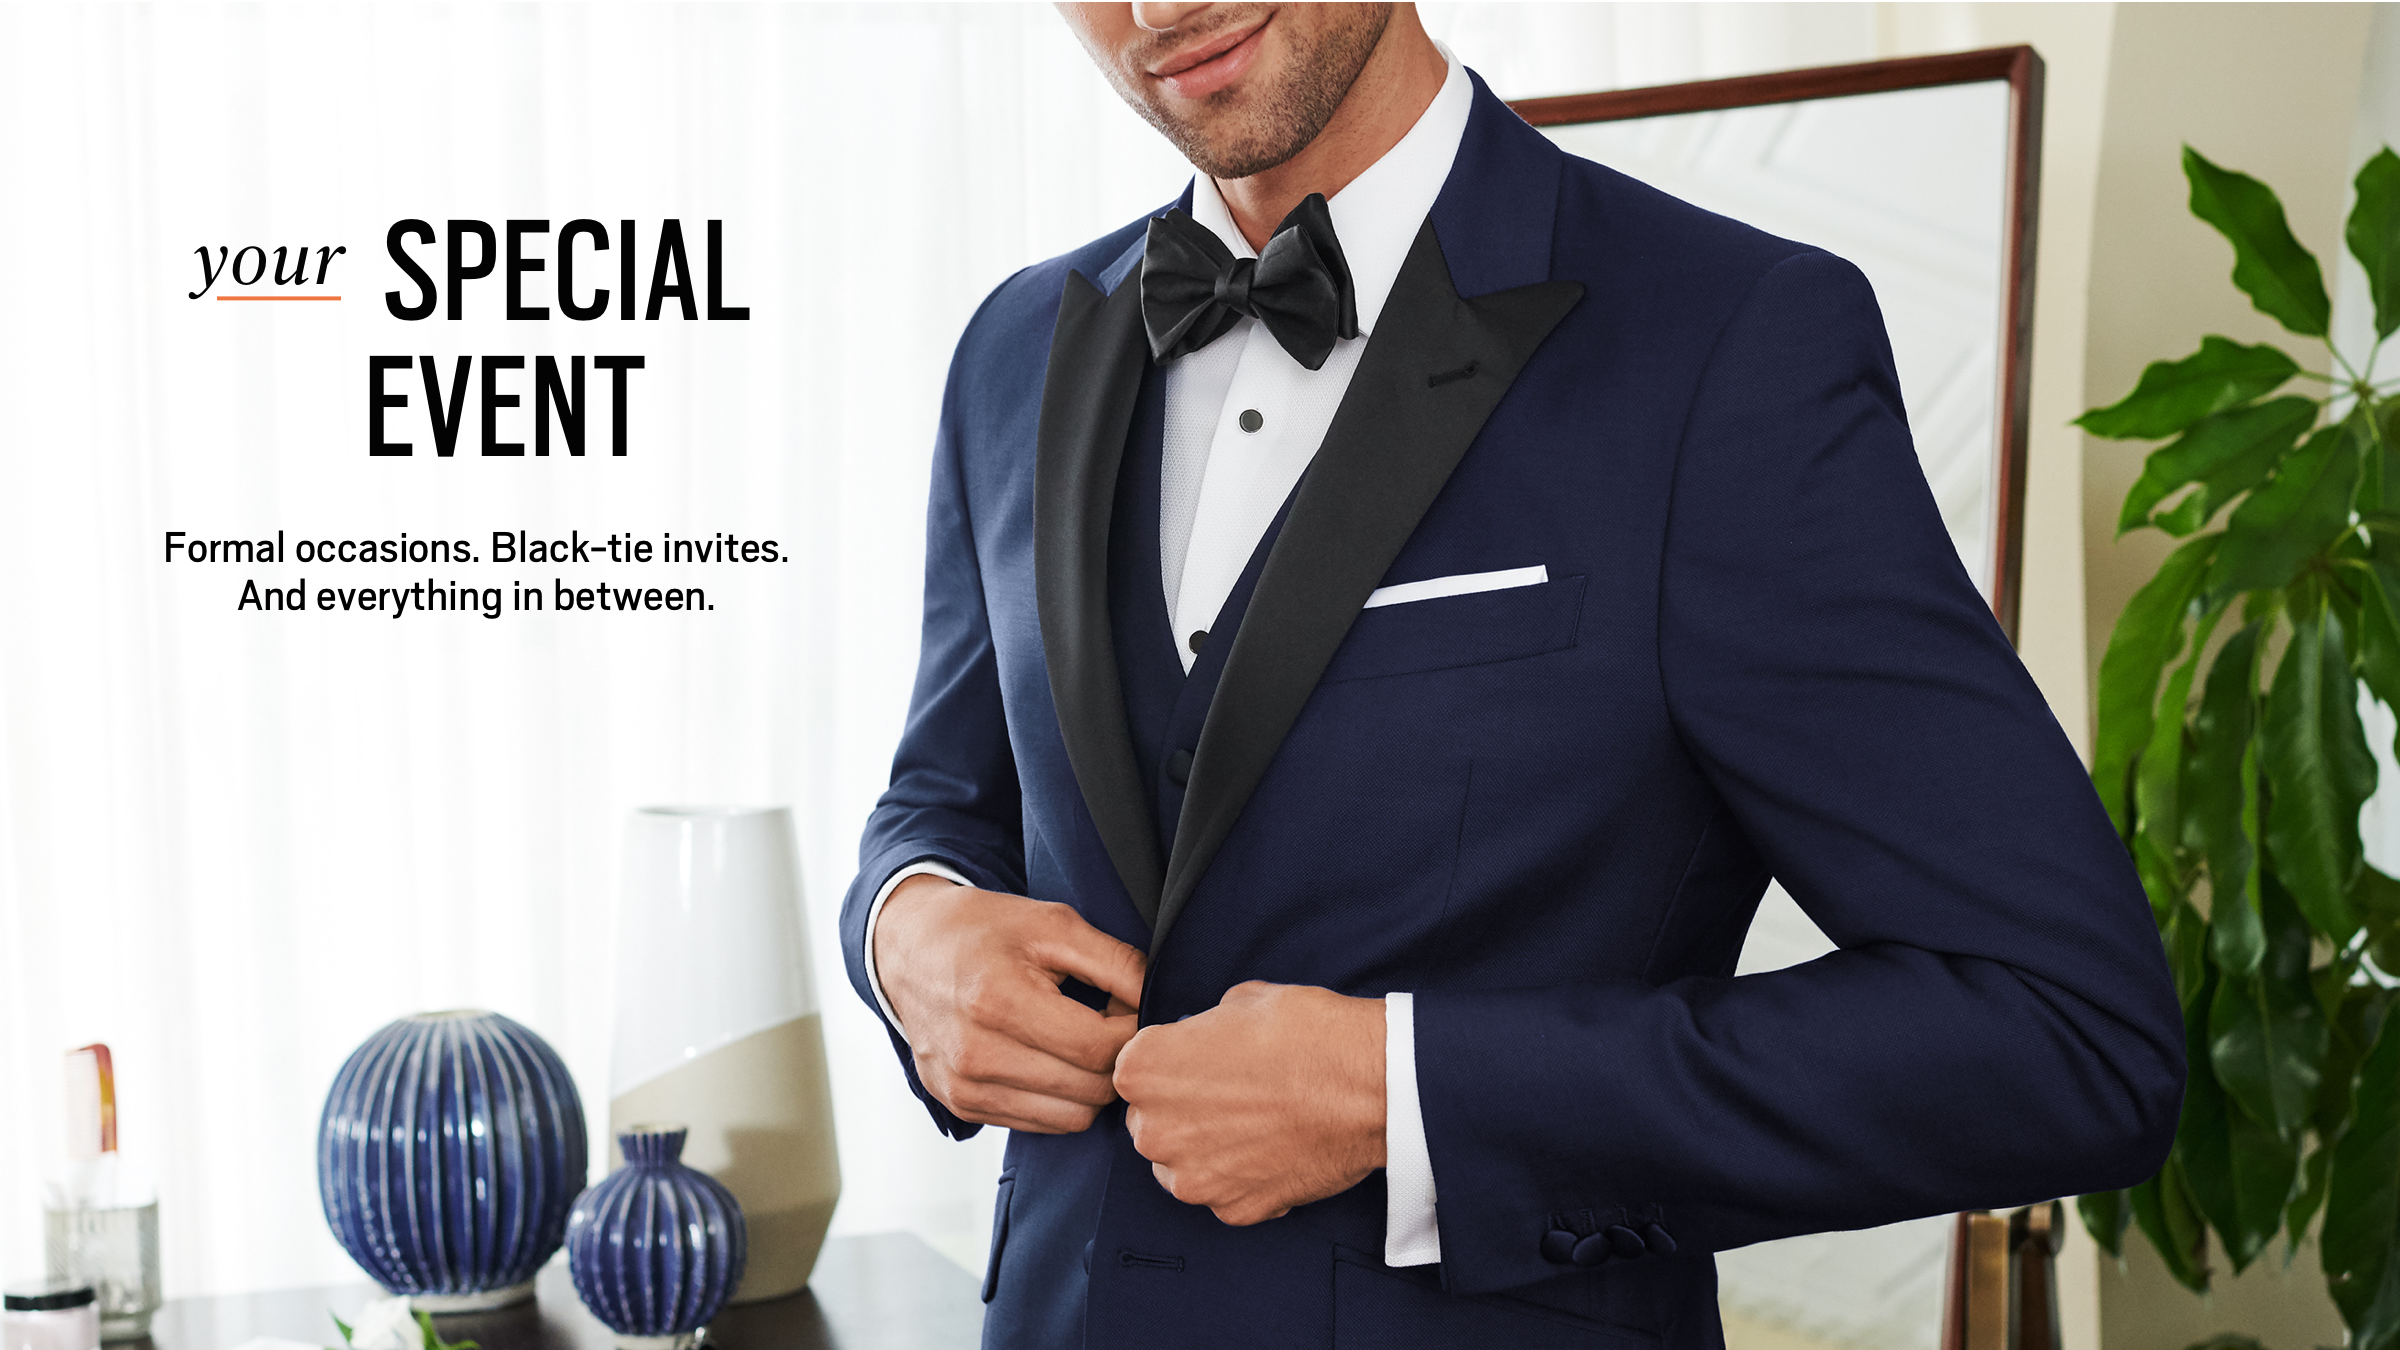 e782e334ae592 Tuxedo Rental, Men's Tuxedos for Rent | Men's Wearhouse